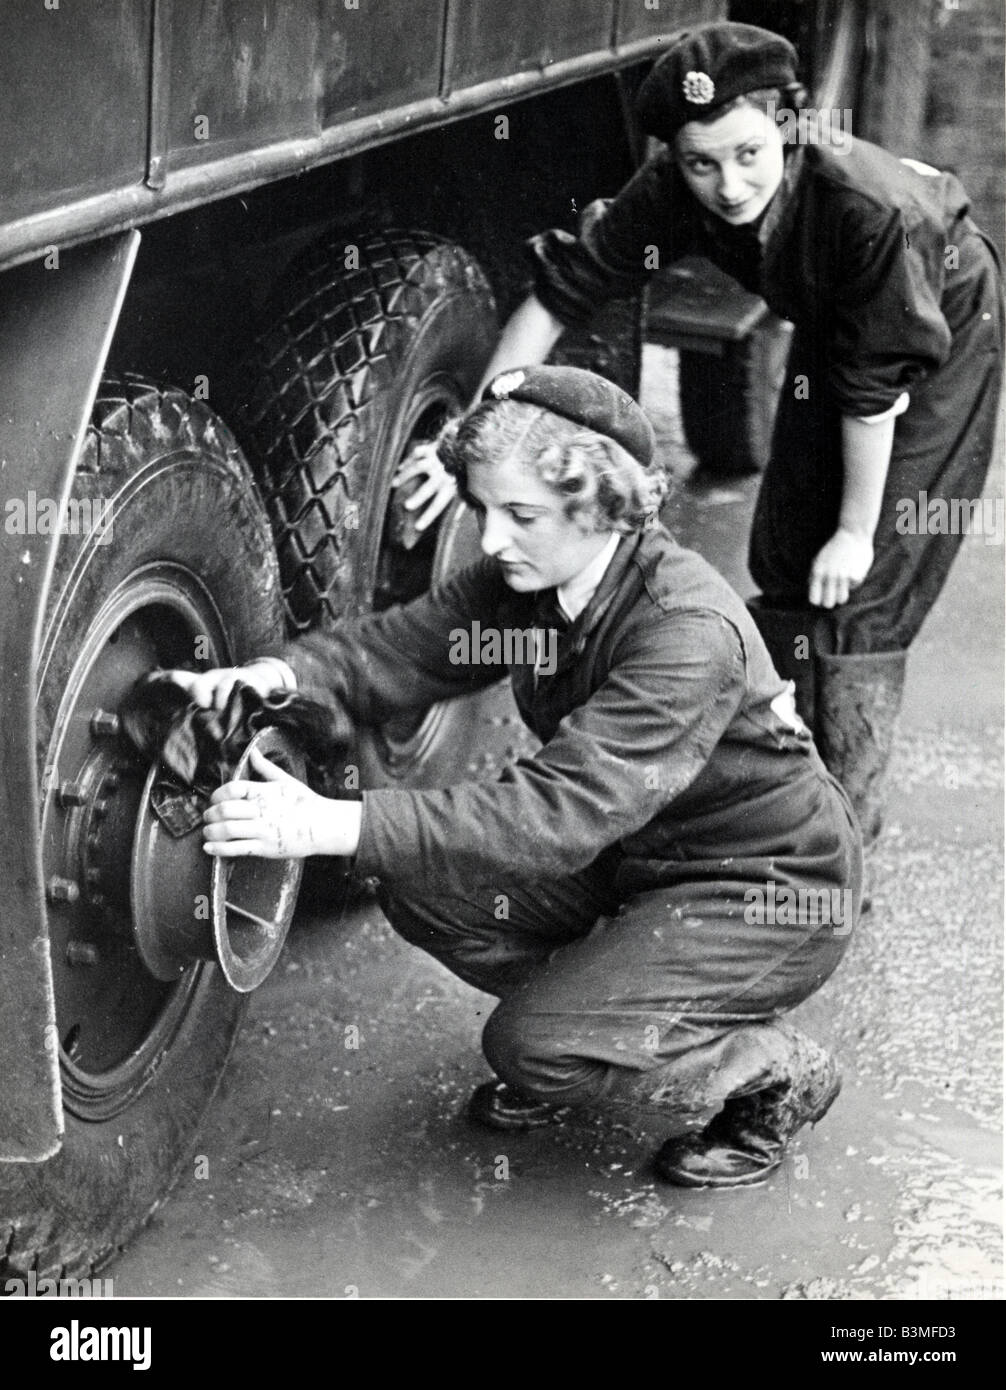 BRITISH WOMEN training as support engineers during WW2 - Stock Image